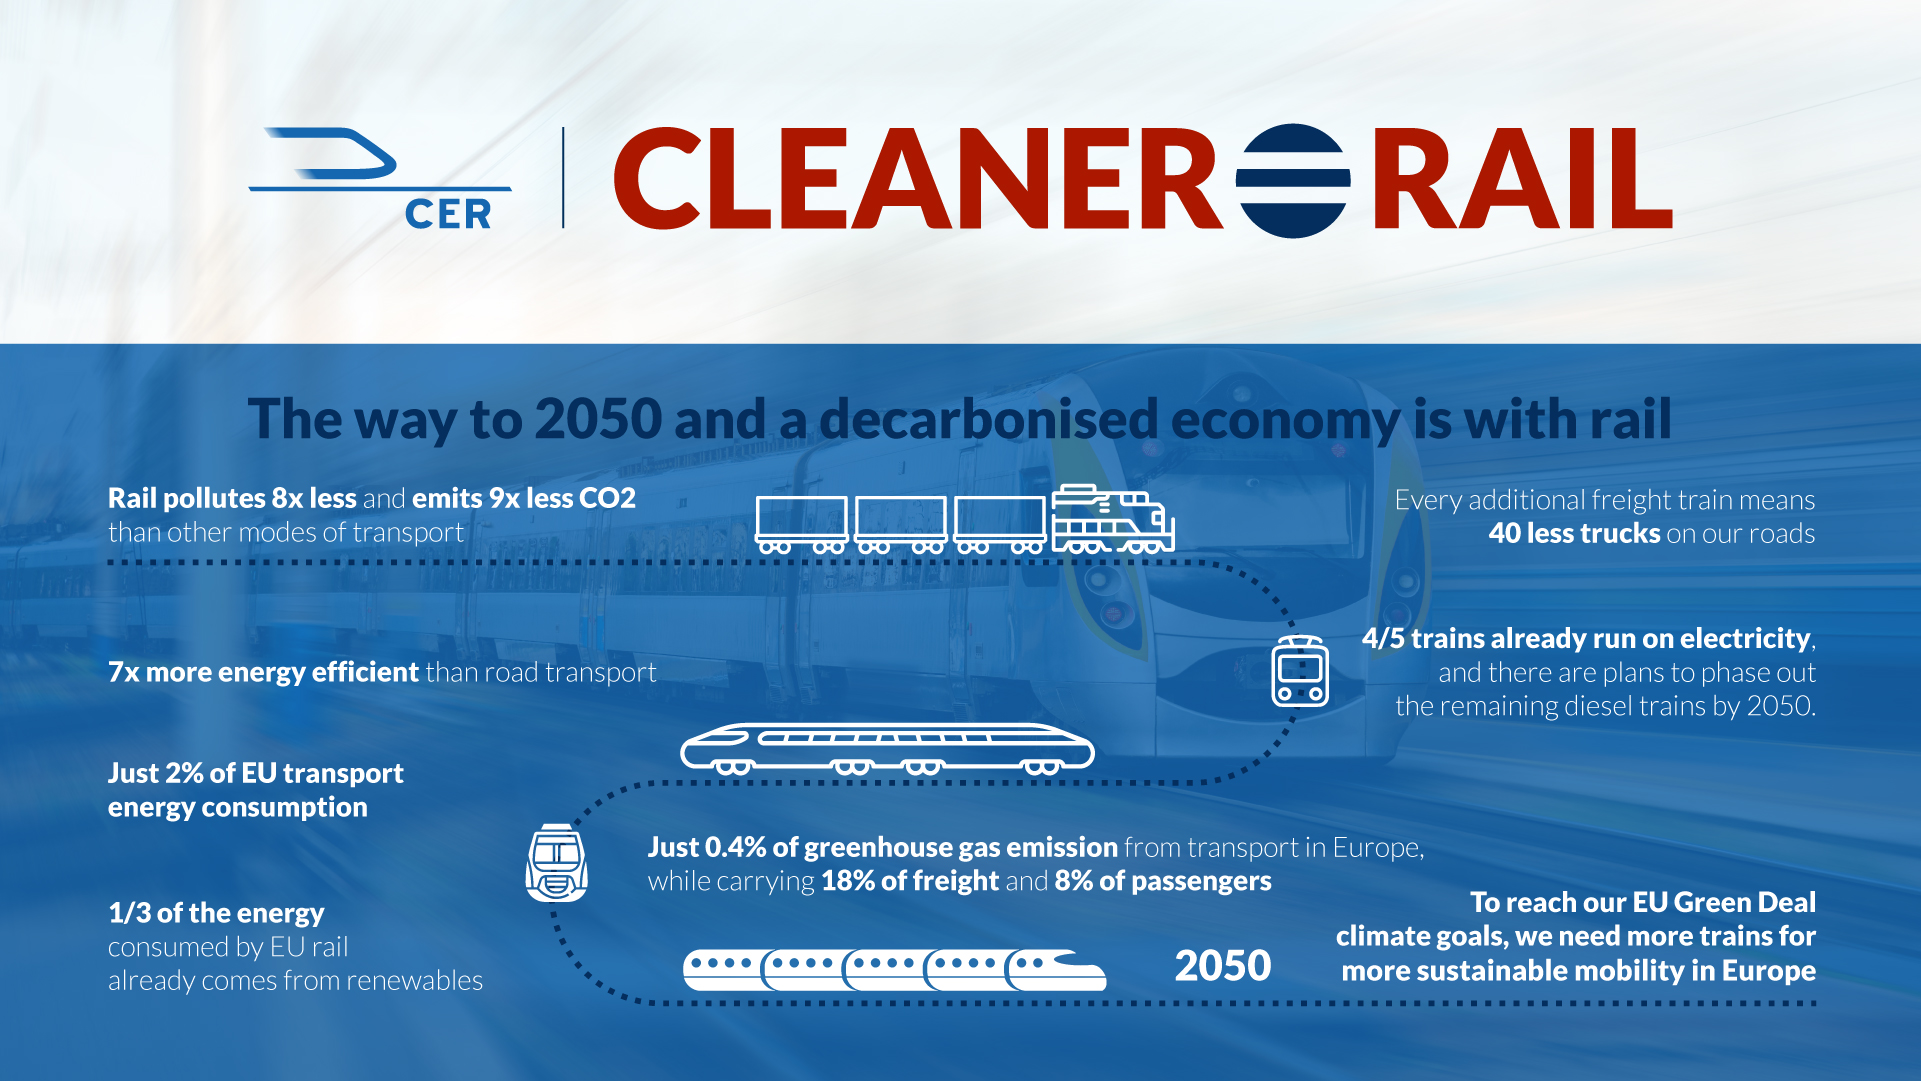 CER 3 CLEANER IS RAIL